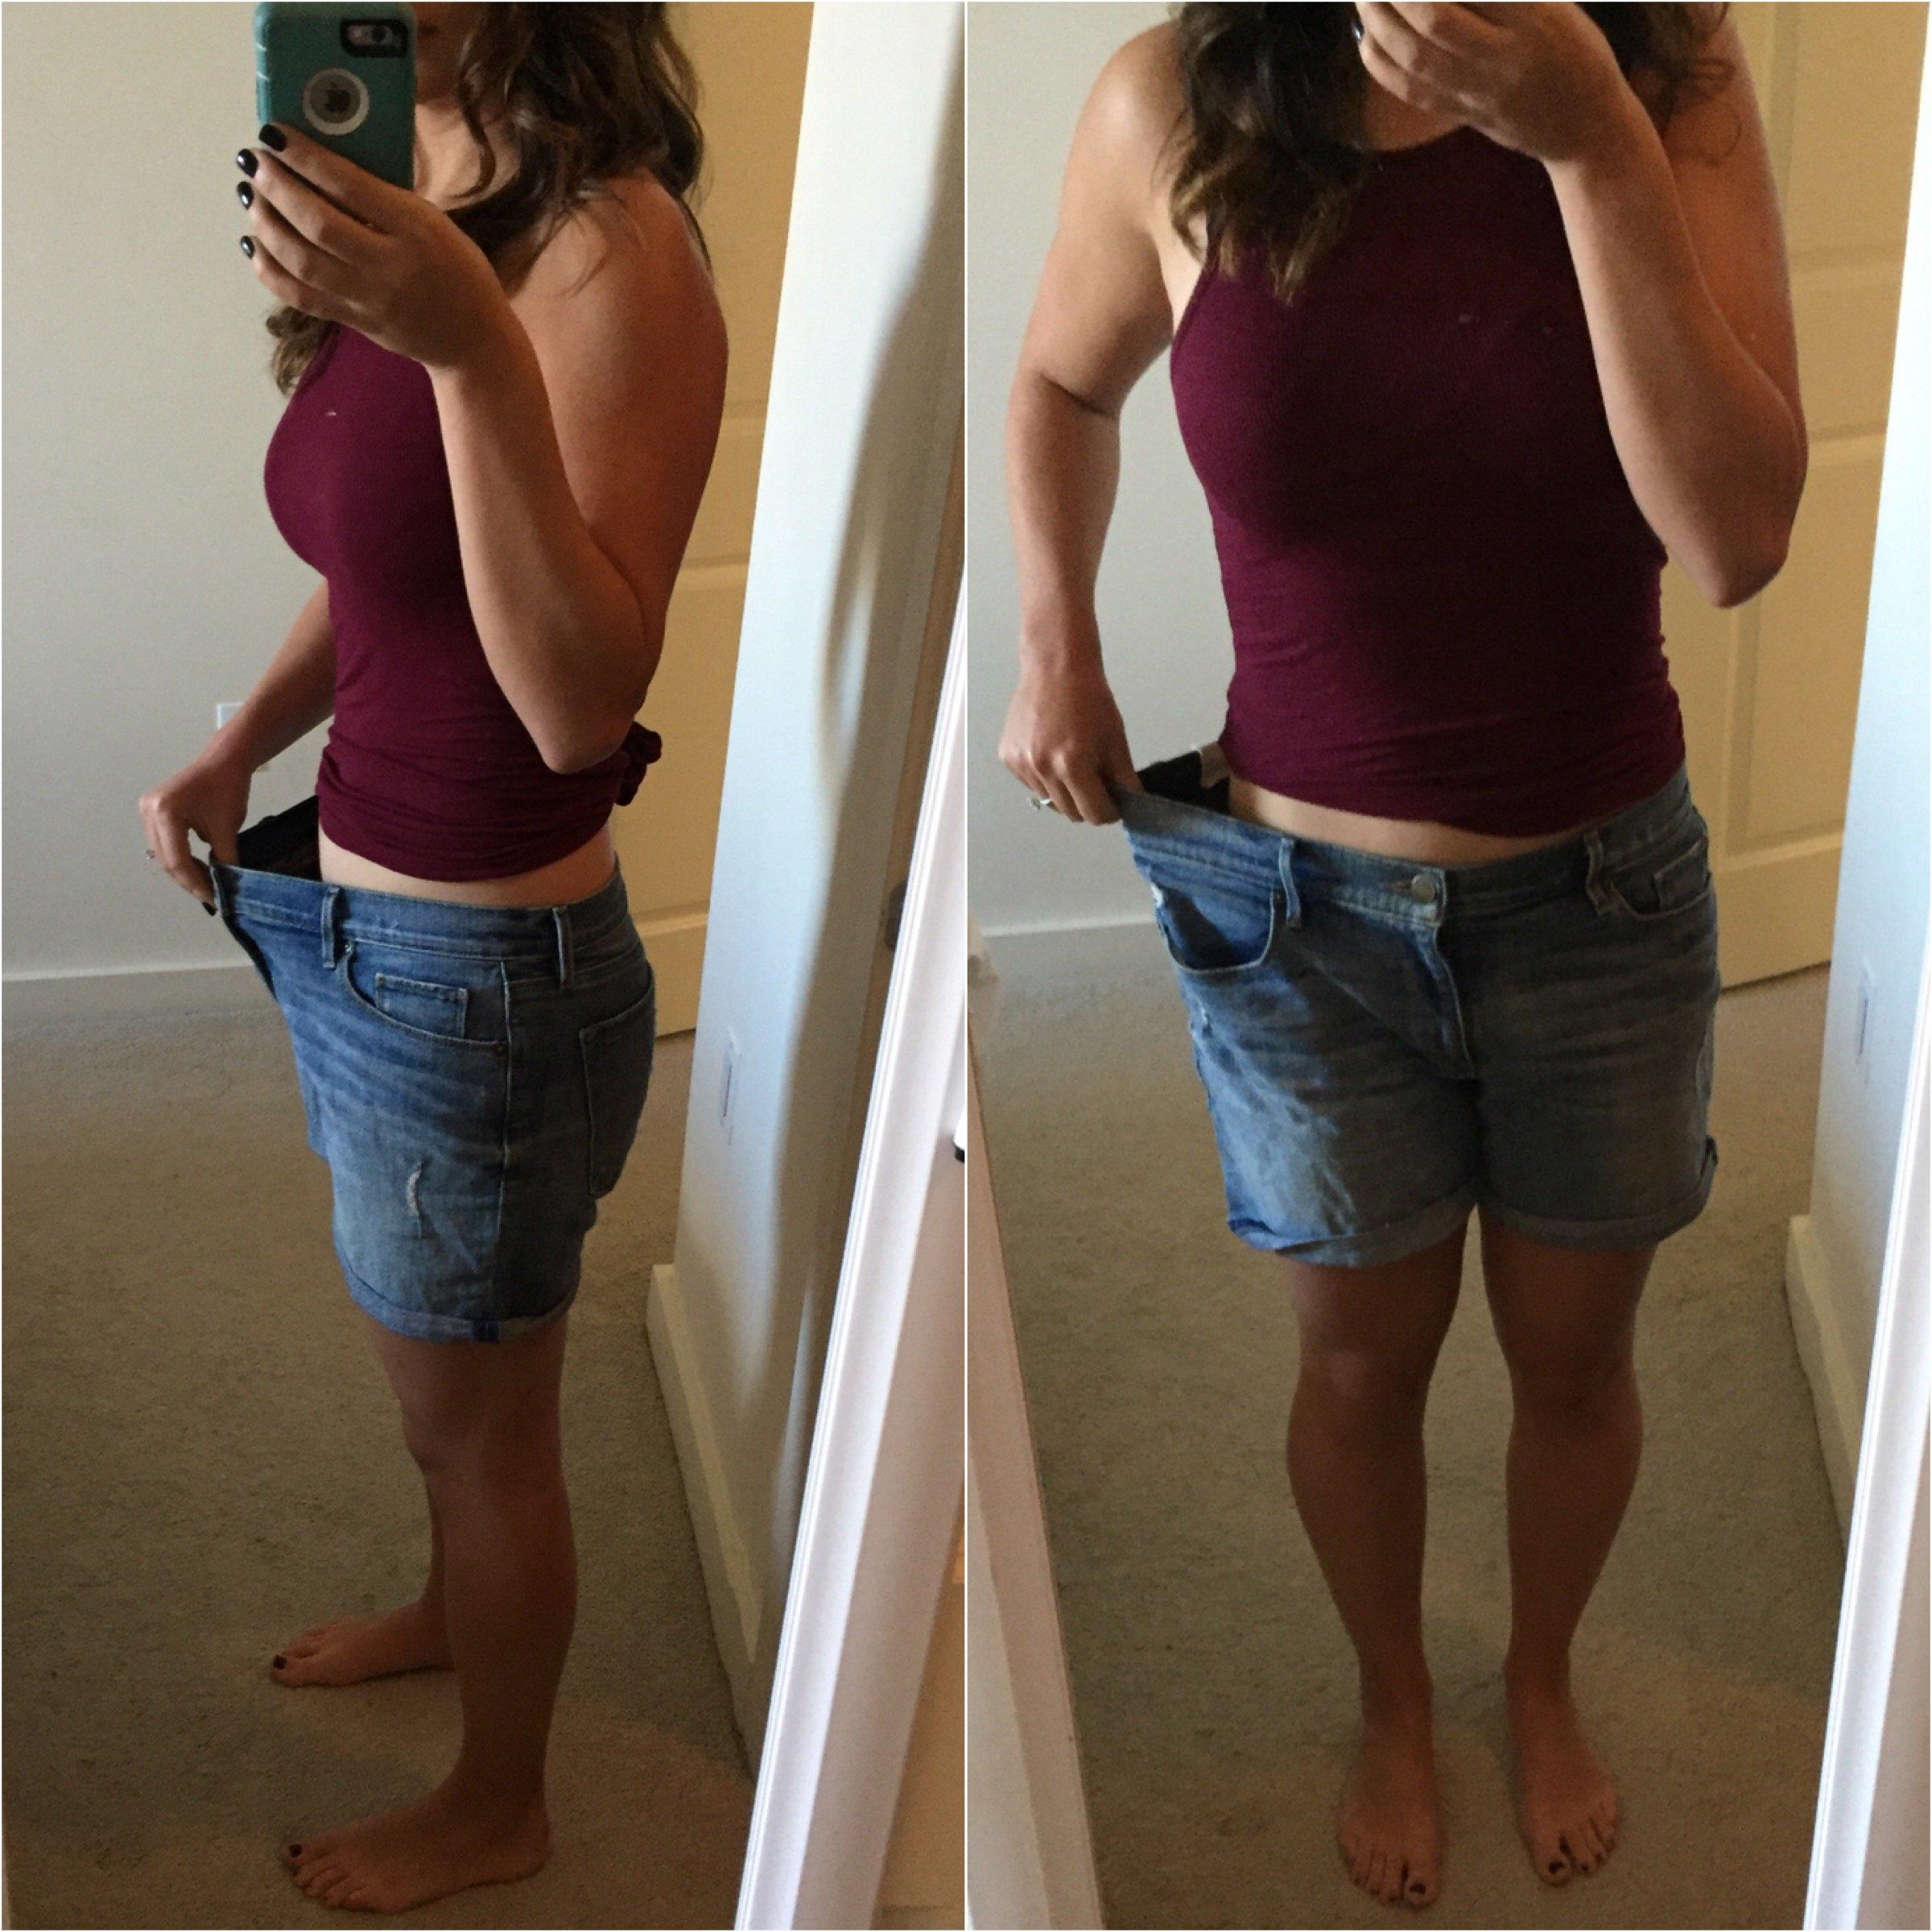 How I Got This Body: She Went from 170 Pounds to 140 Thanks